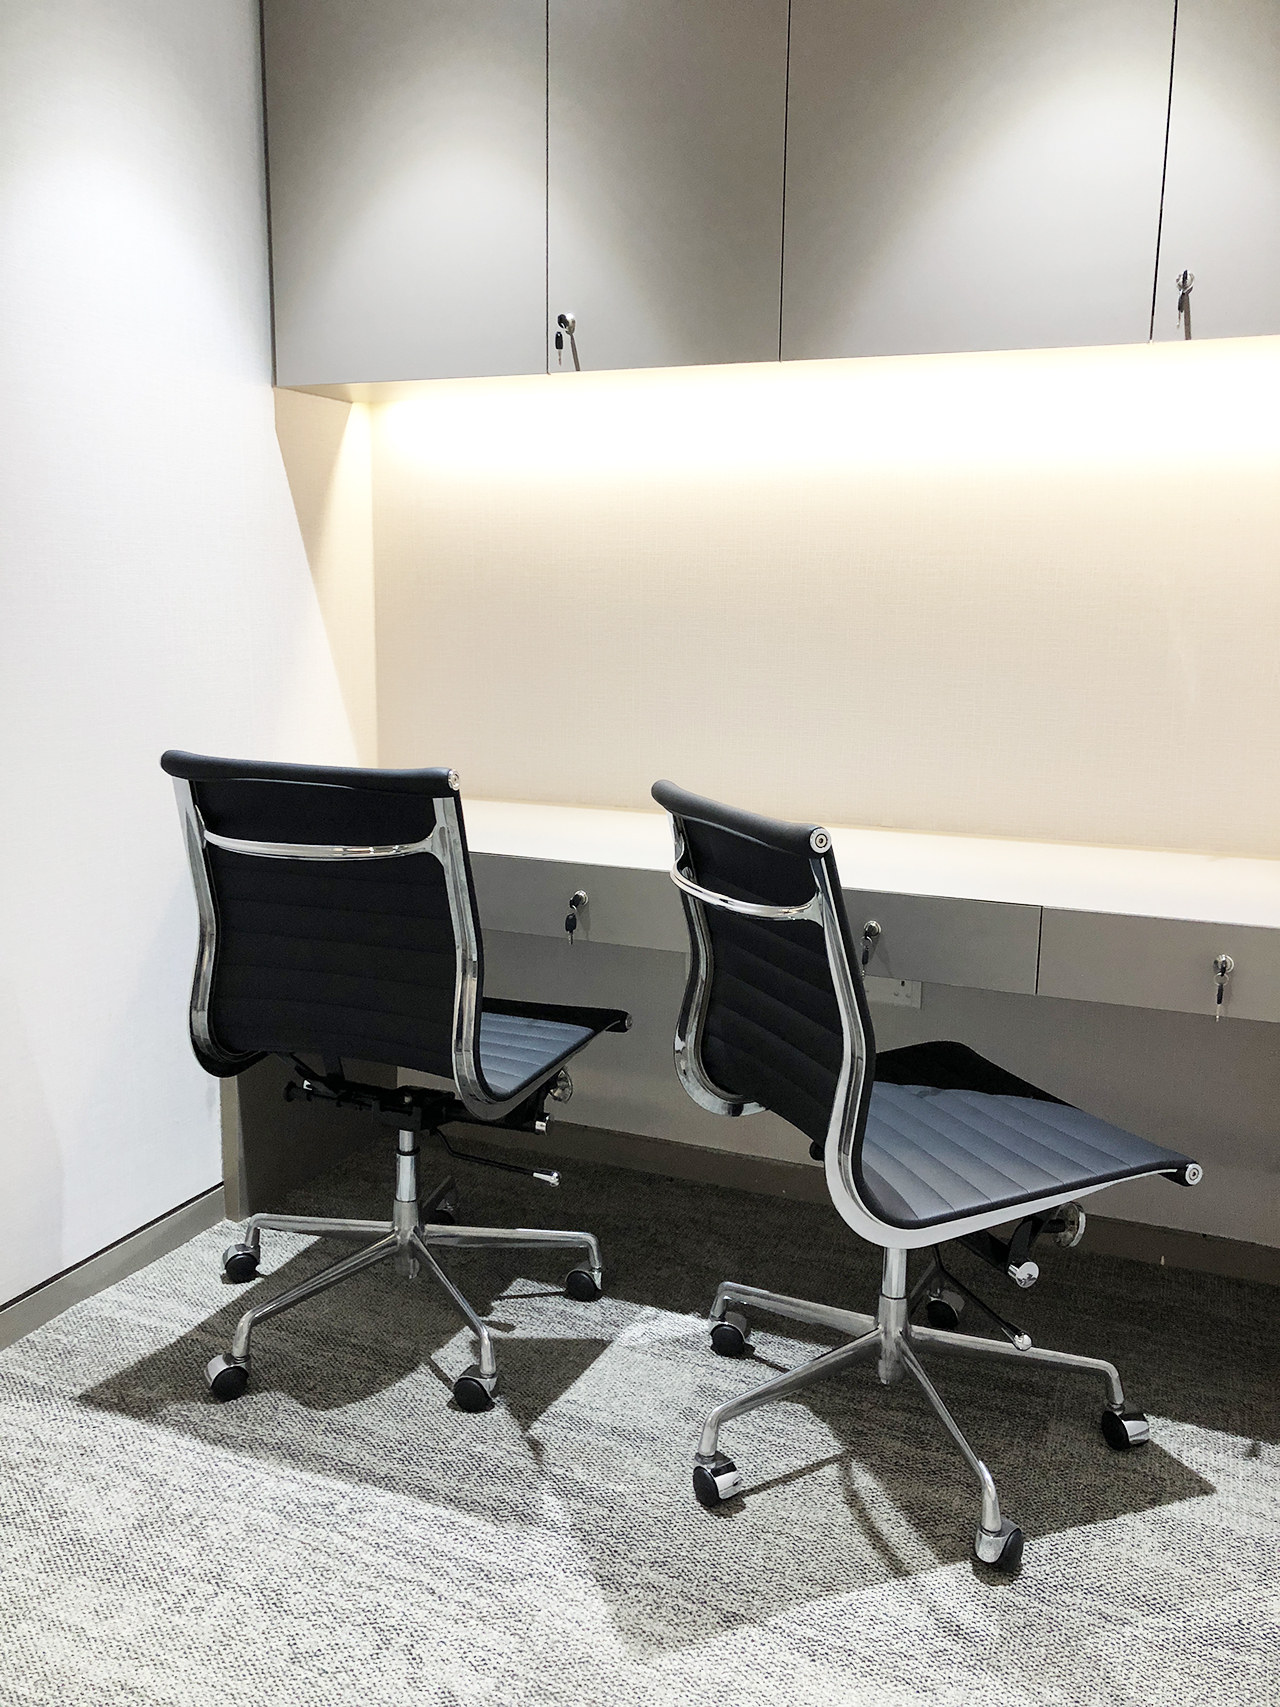 Raffles Hospital - Specialist Clinic | Product Seen: [Eam Aluminium Midback (replica) Office Chair]